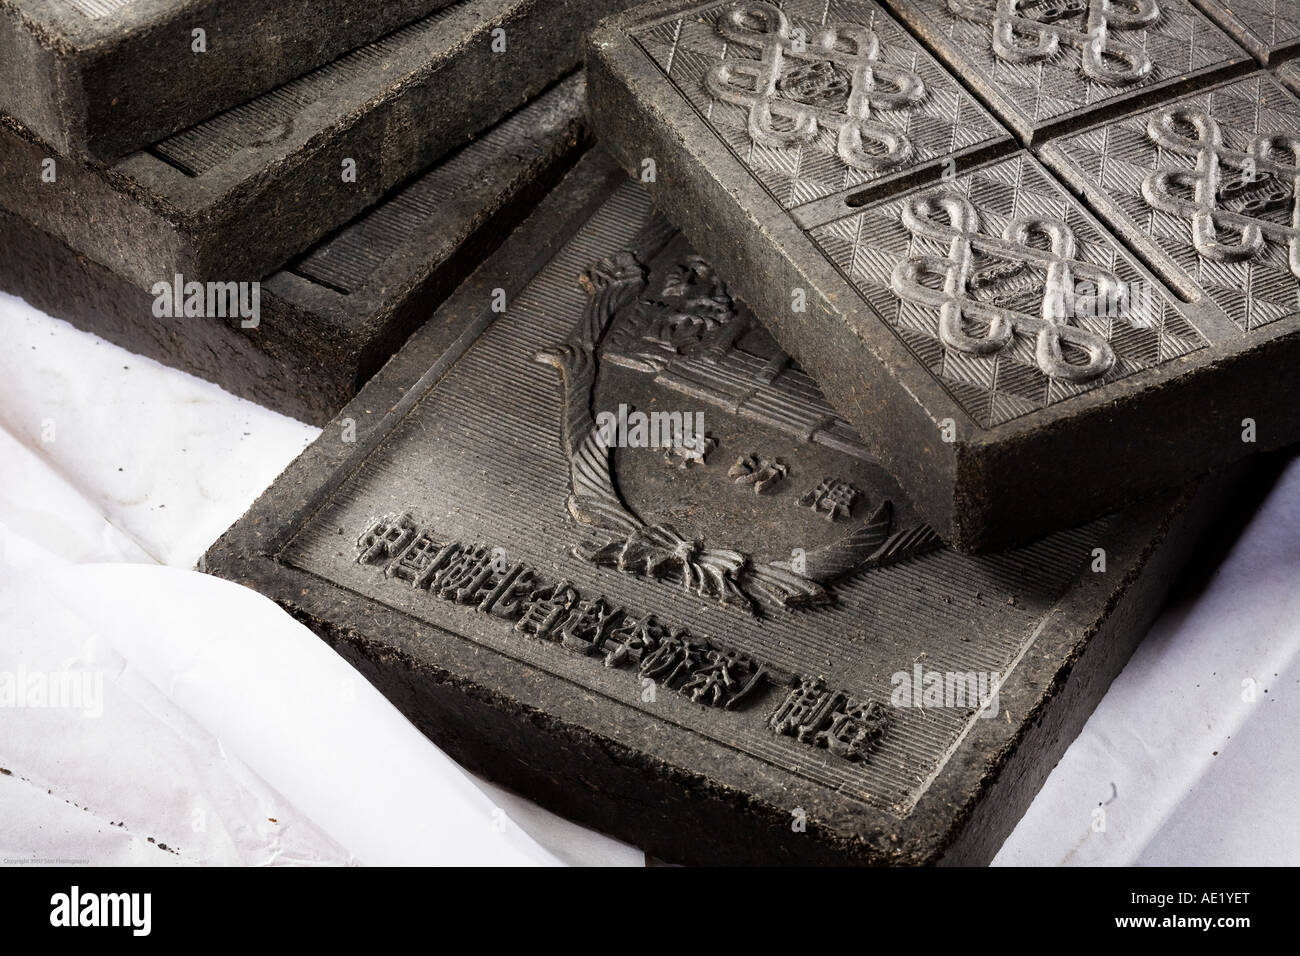 Richly embossed tea bricks stacked atop one another. - Stock Image